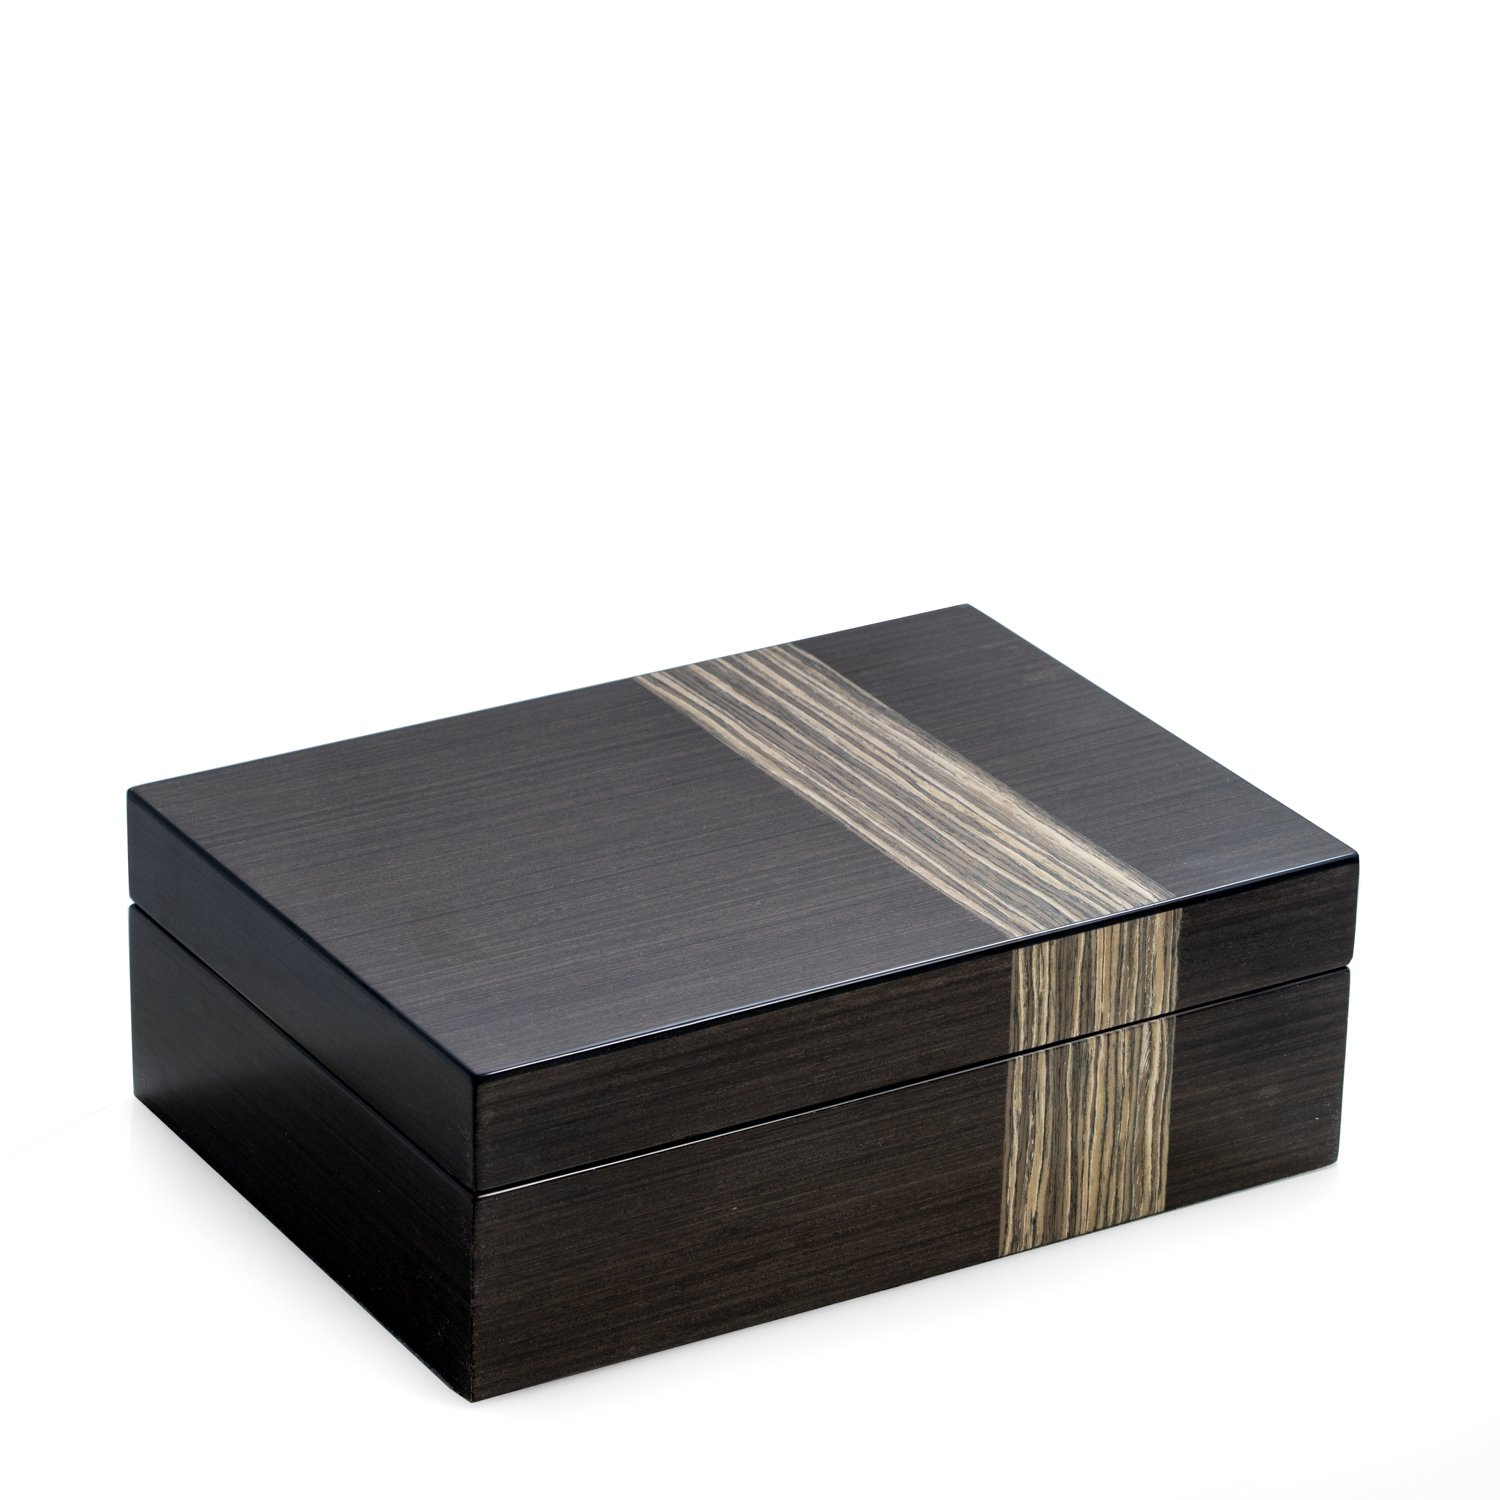 Time Factory AJ-BB677GRY Lacquered ''Ash'' Wood Valet Box with Multi Compartments for Storage, 4 Watch Pillows and Removable Valet Tray, Ash Wood